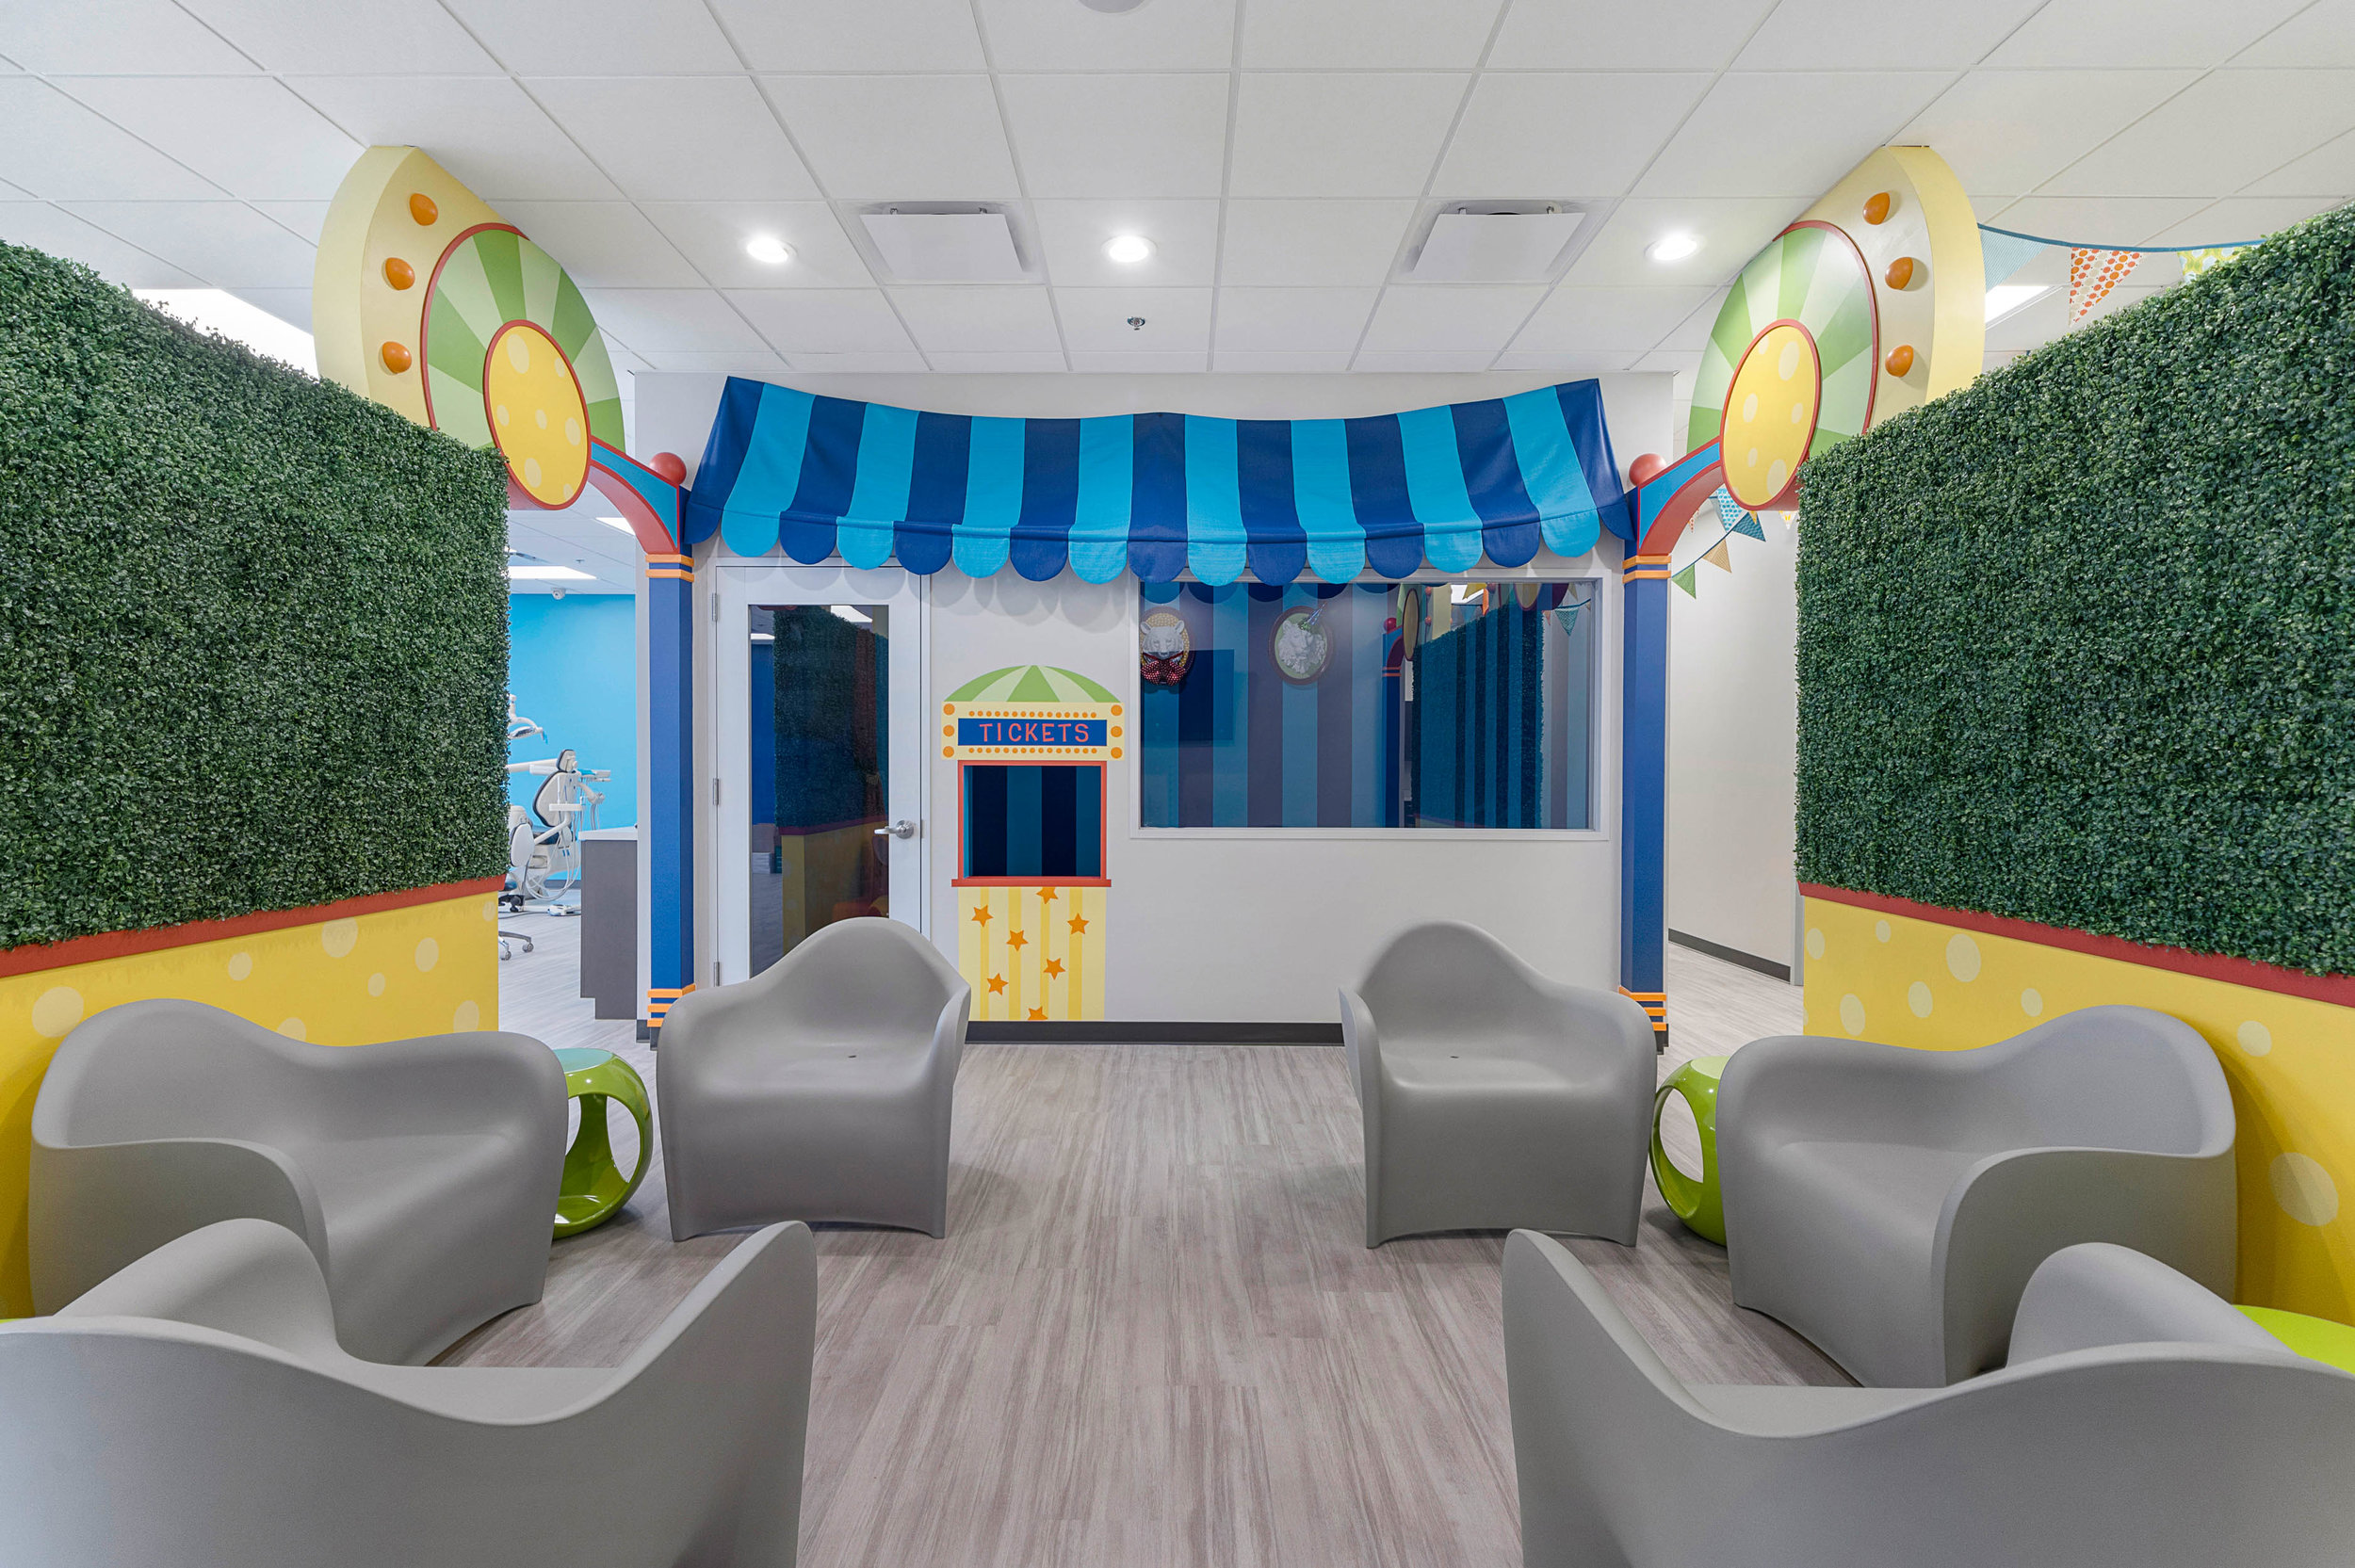 PEDIATRIC DENTIST OFFICE HOUSTON TEXAS 77022.jpg